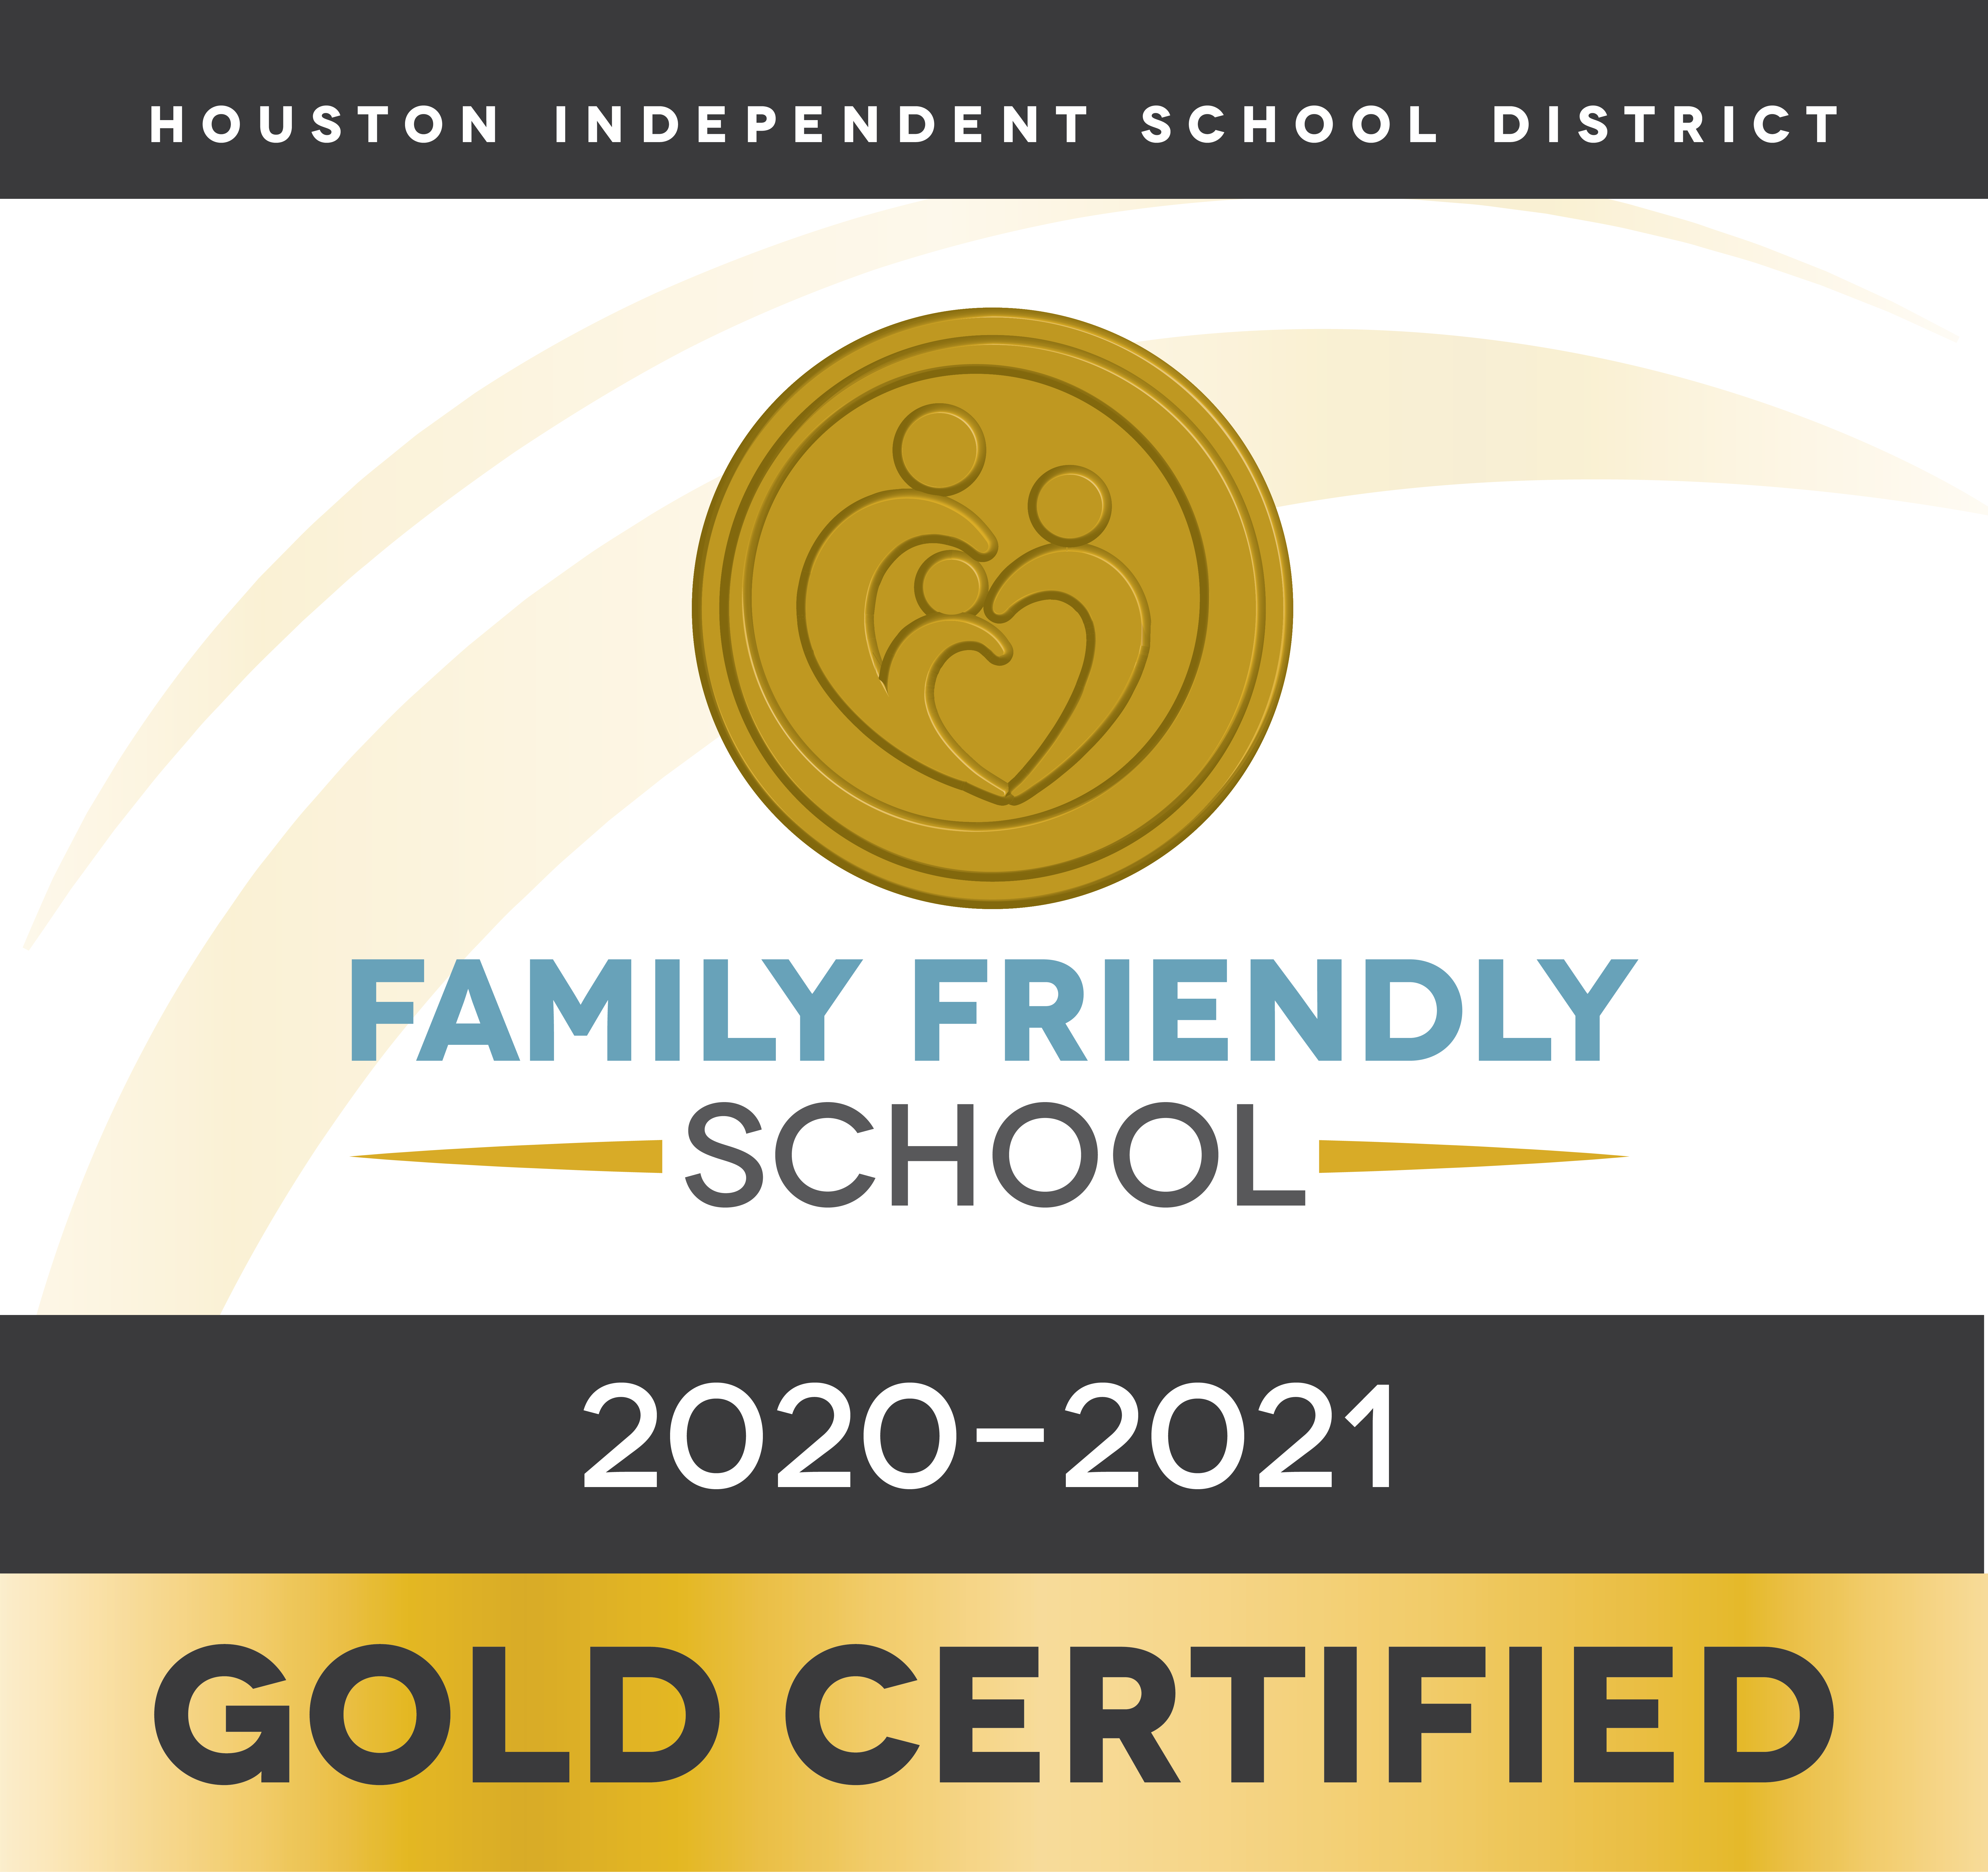 This campus is a Gold Certified Family Friendly School